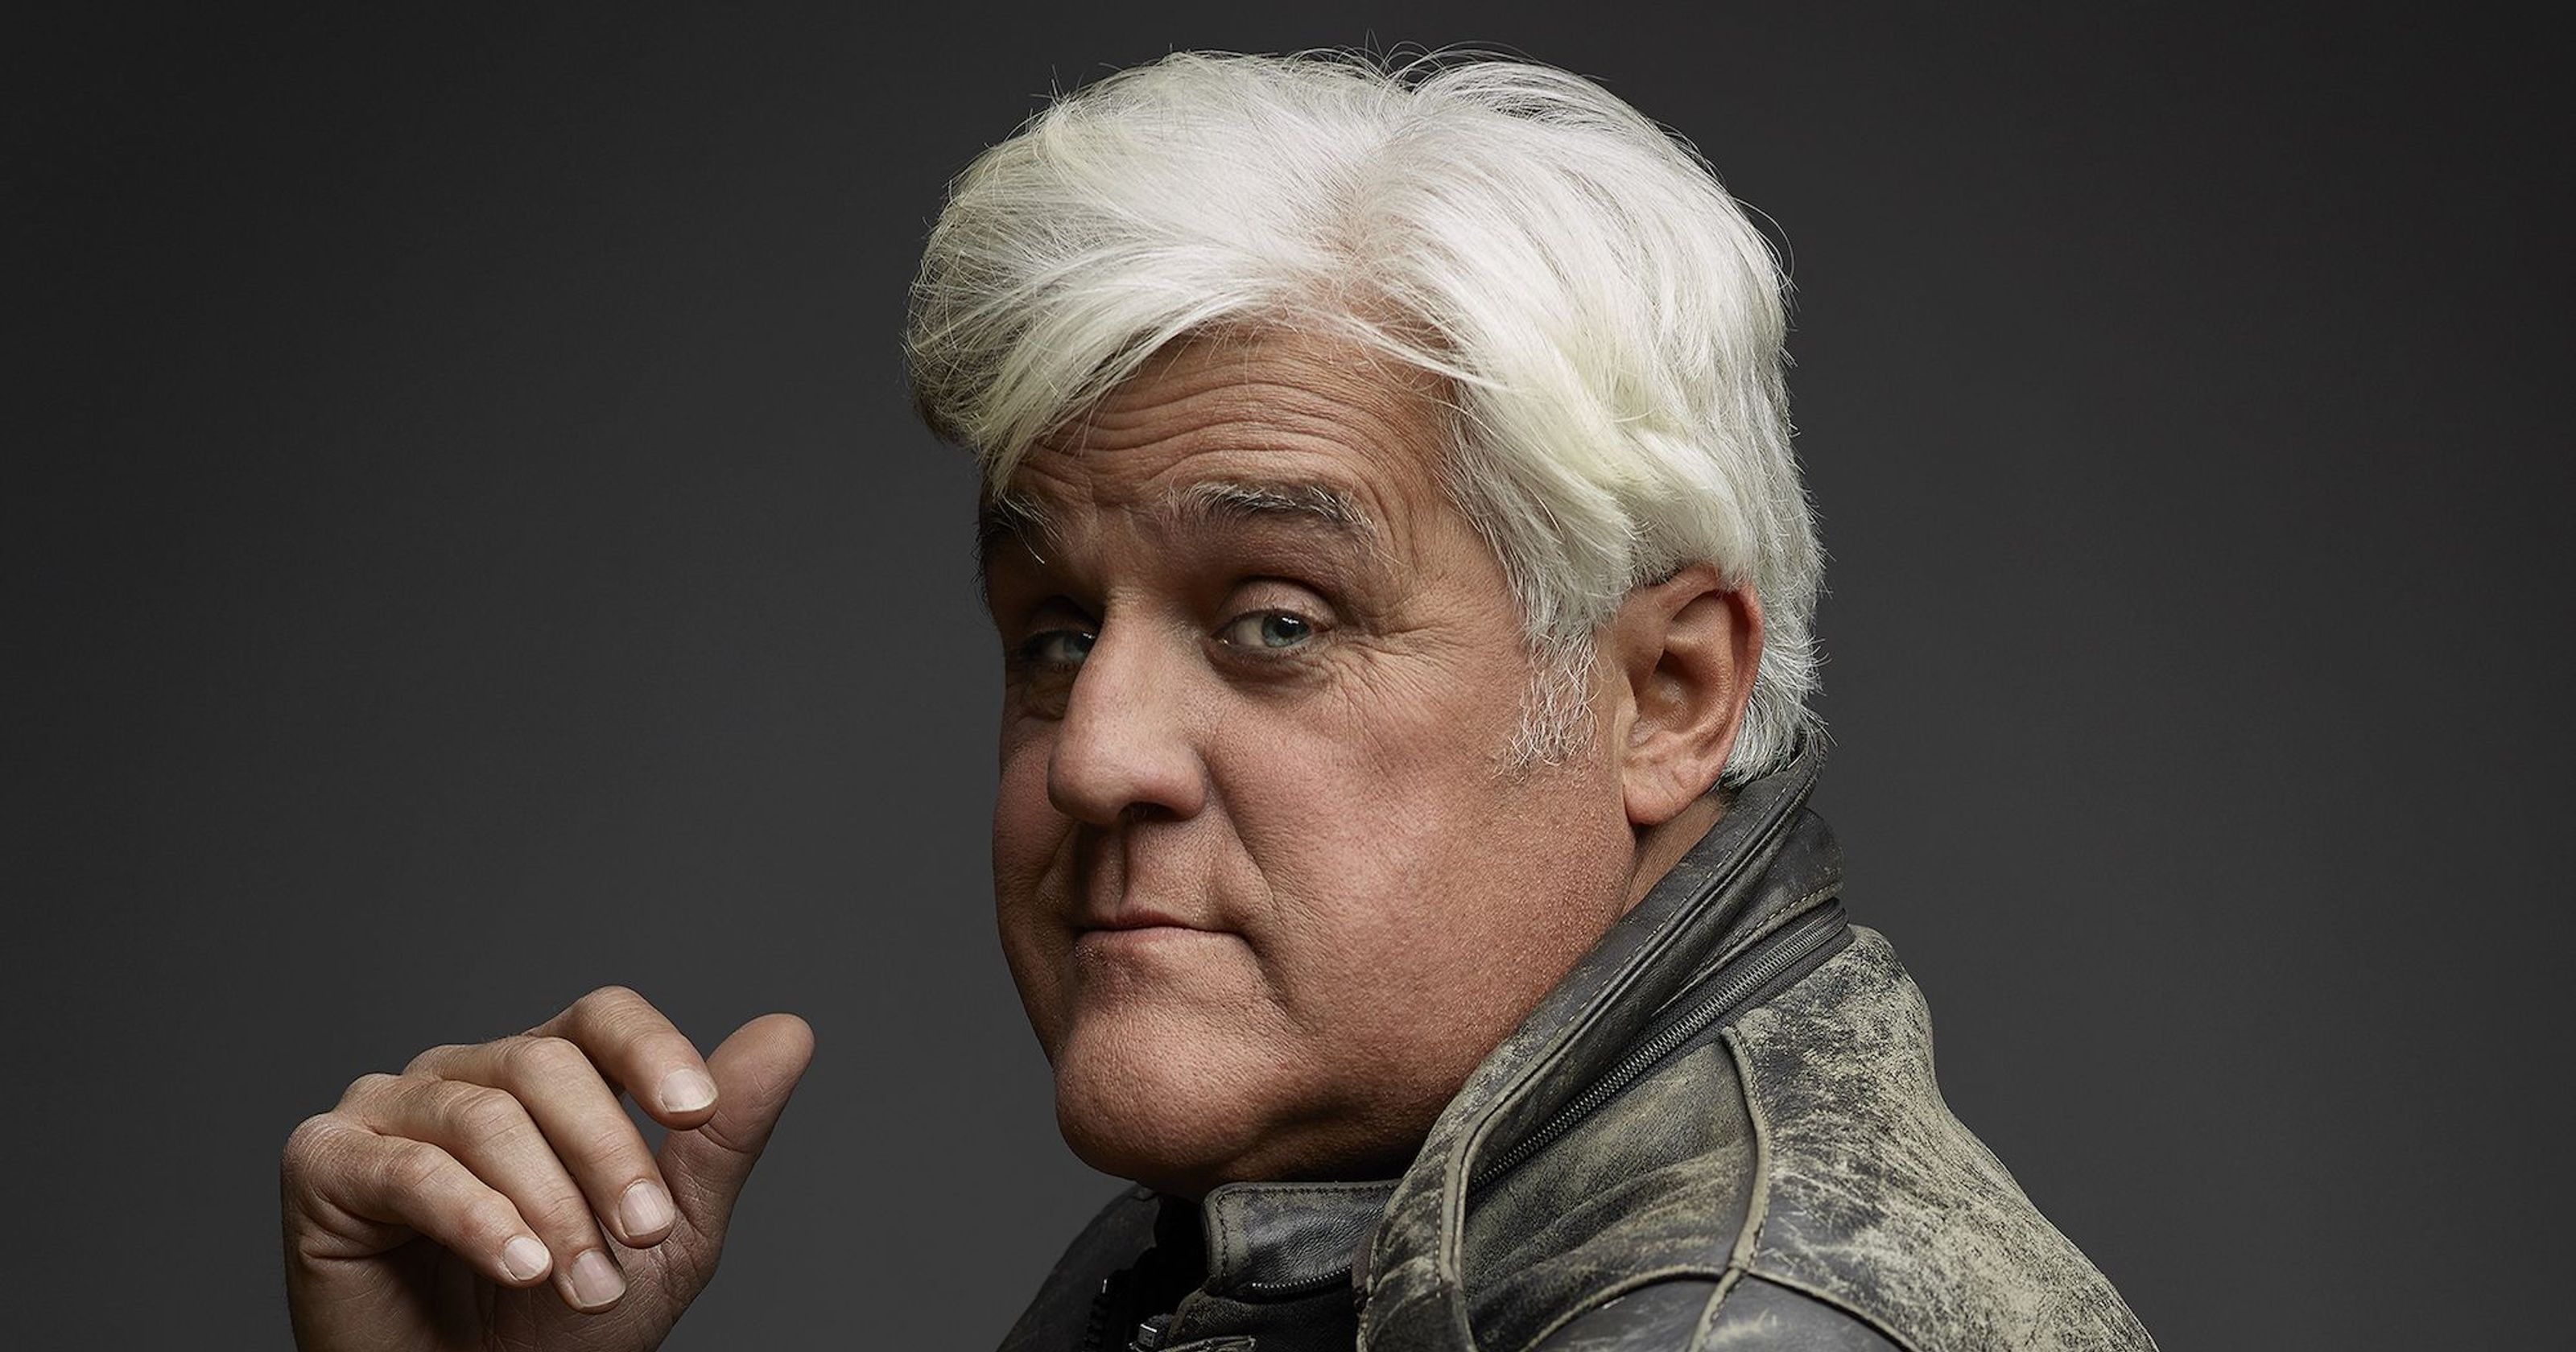 Jay Leno -He is one of the most influential American talk show hosts